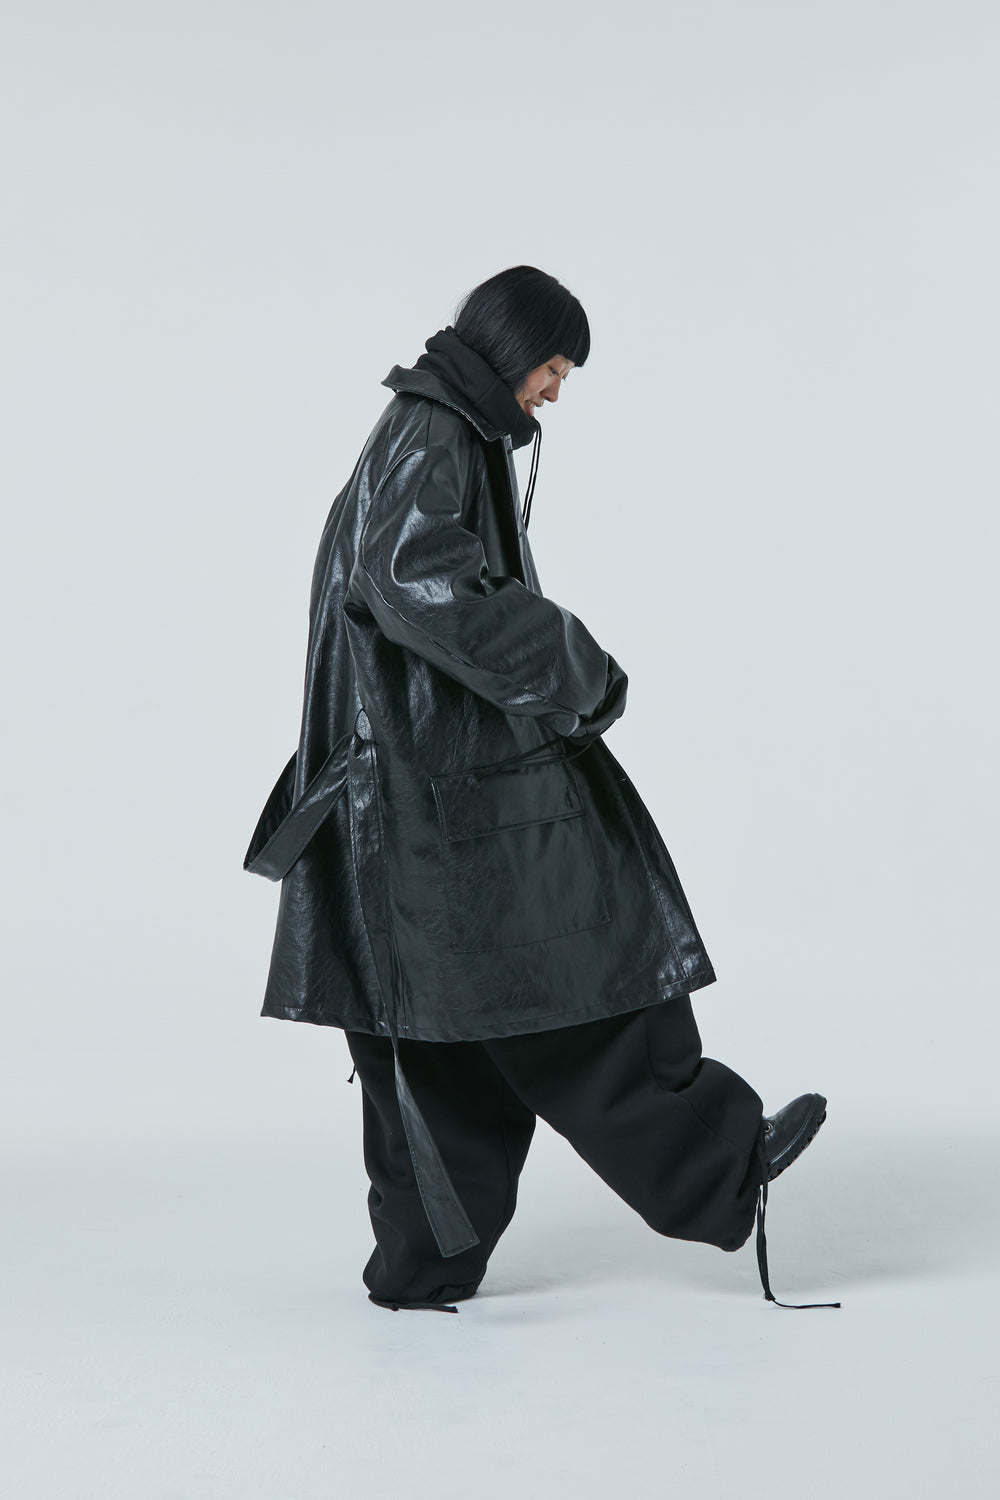 [Off season discount] FW20 Unisex Padded Synthetic Leather Coat